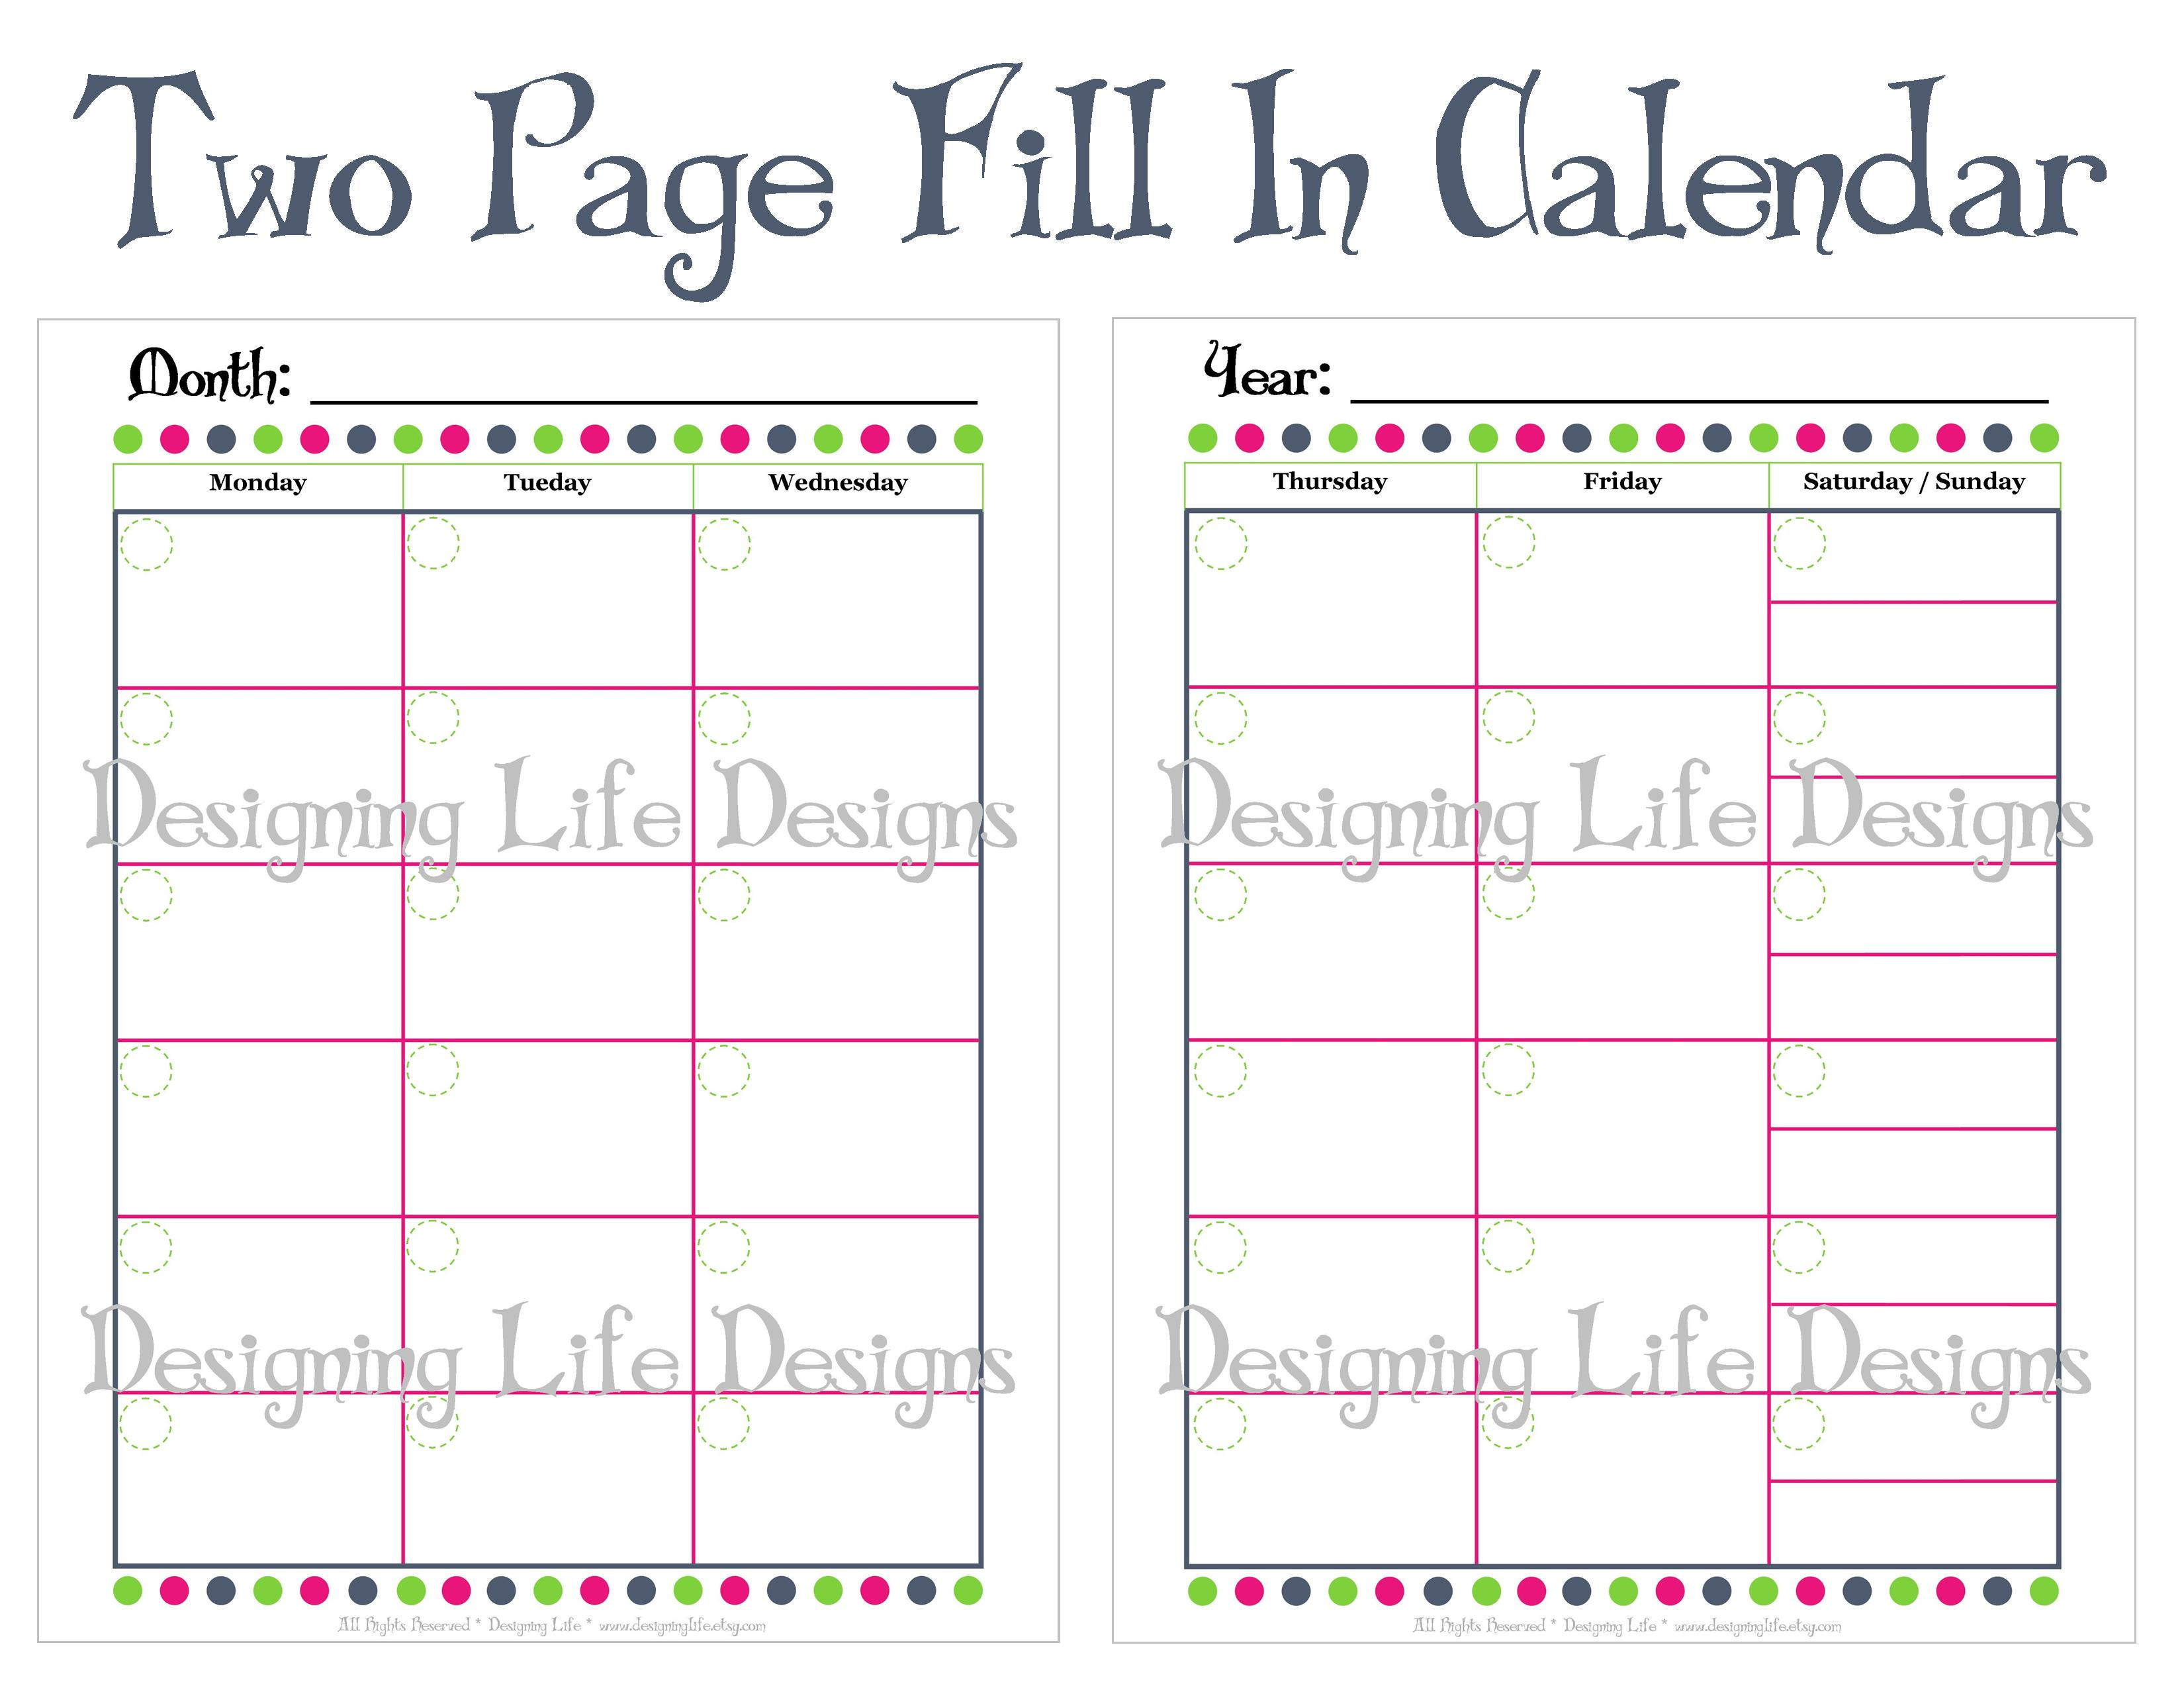 Designing Life | Fill In Monthly Calendar Printable - Two Page Design ...